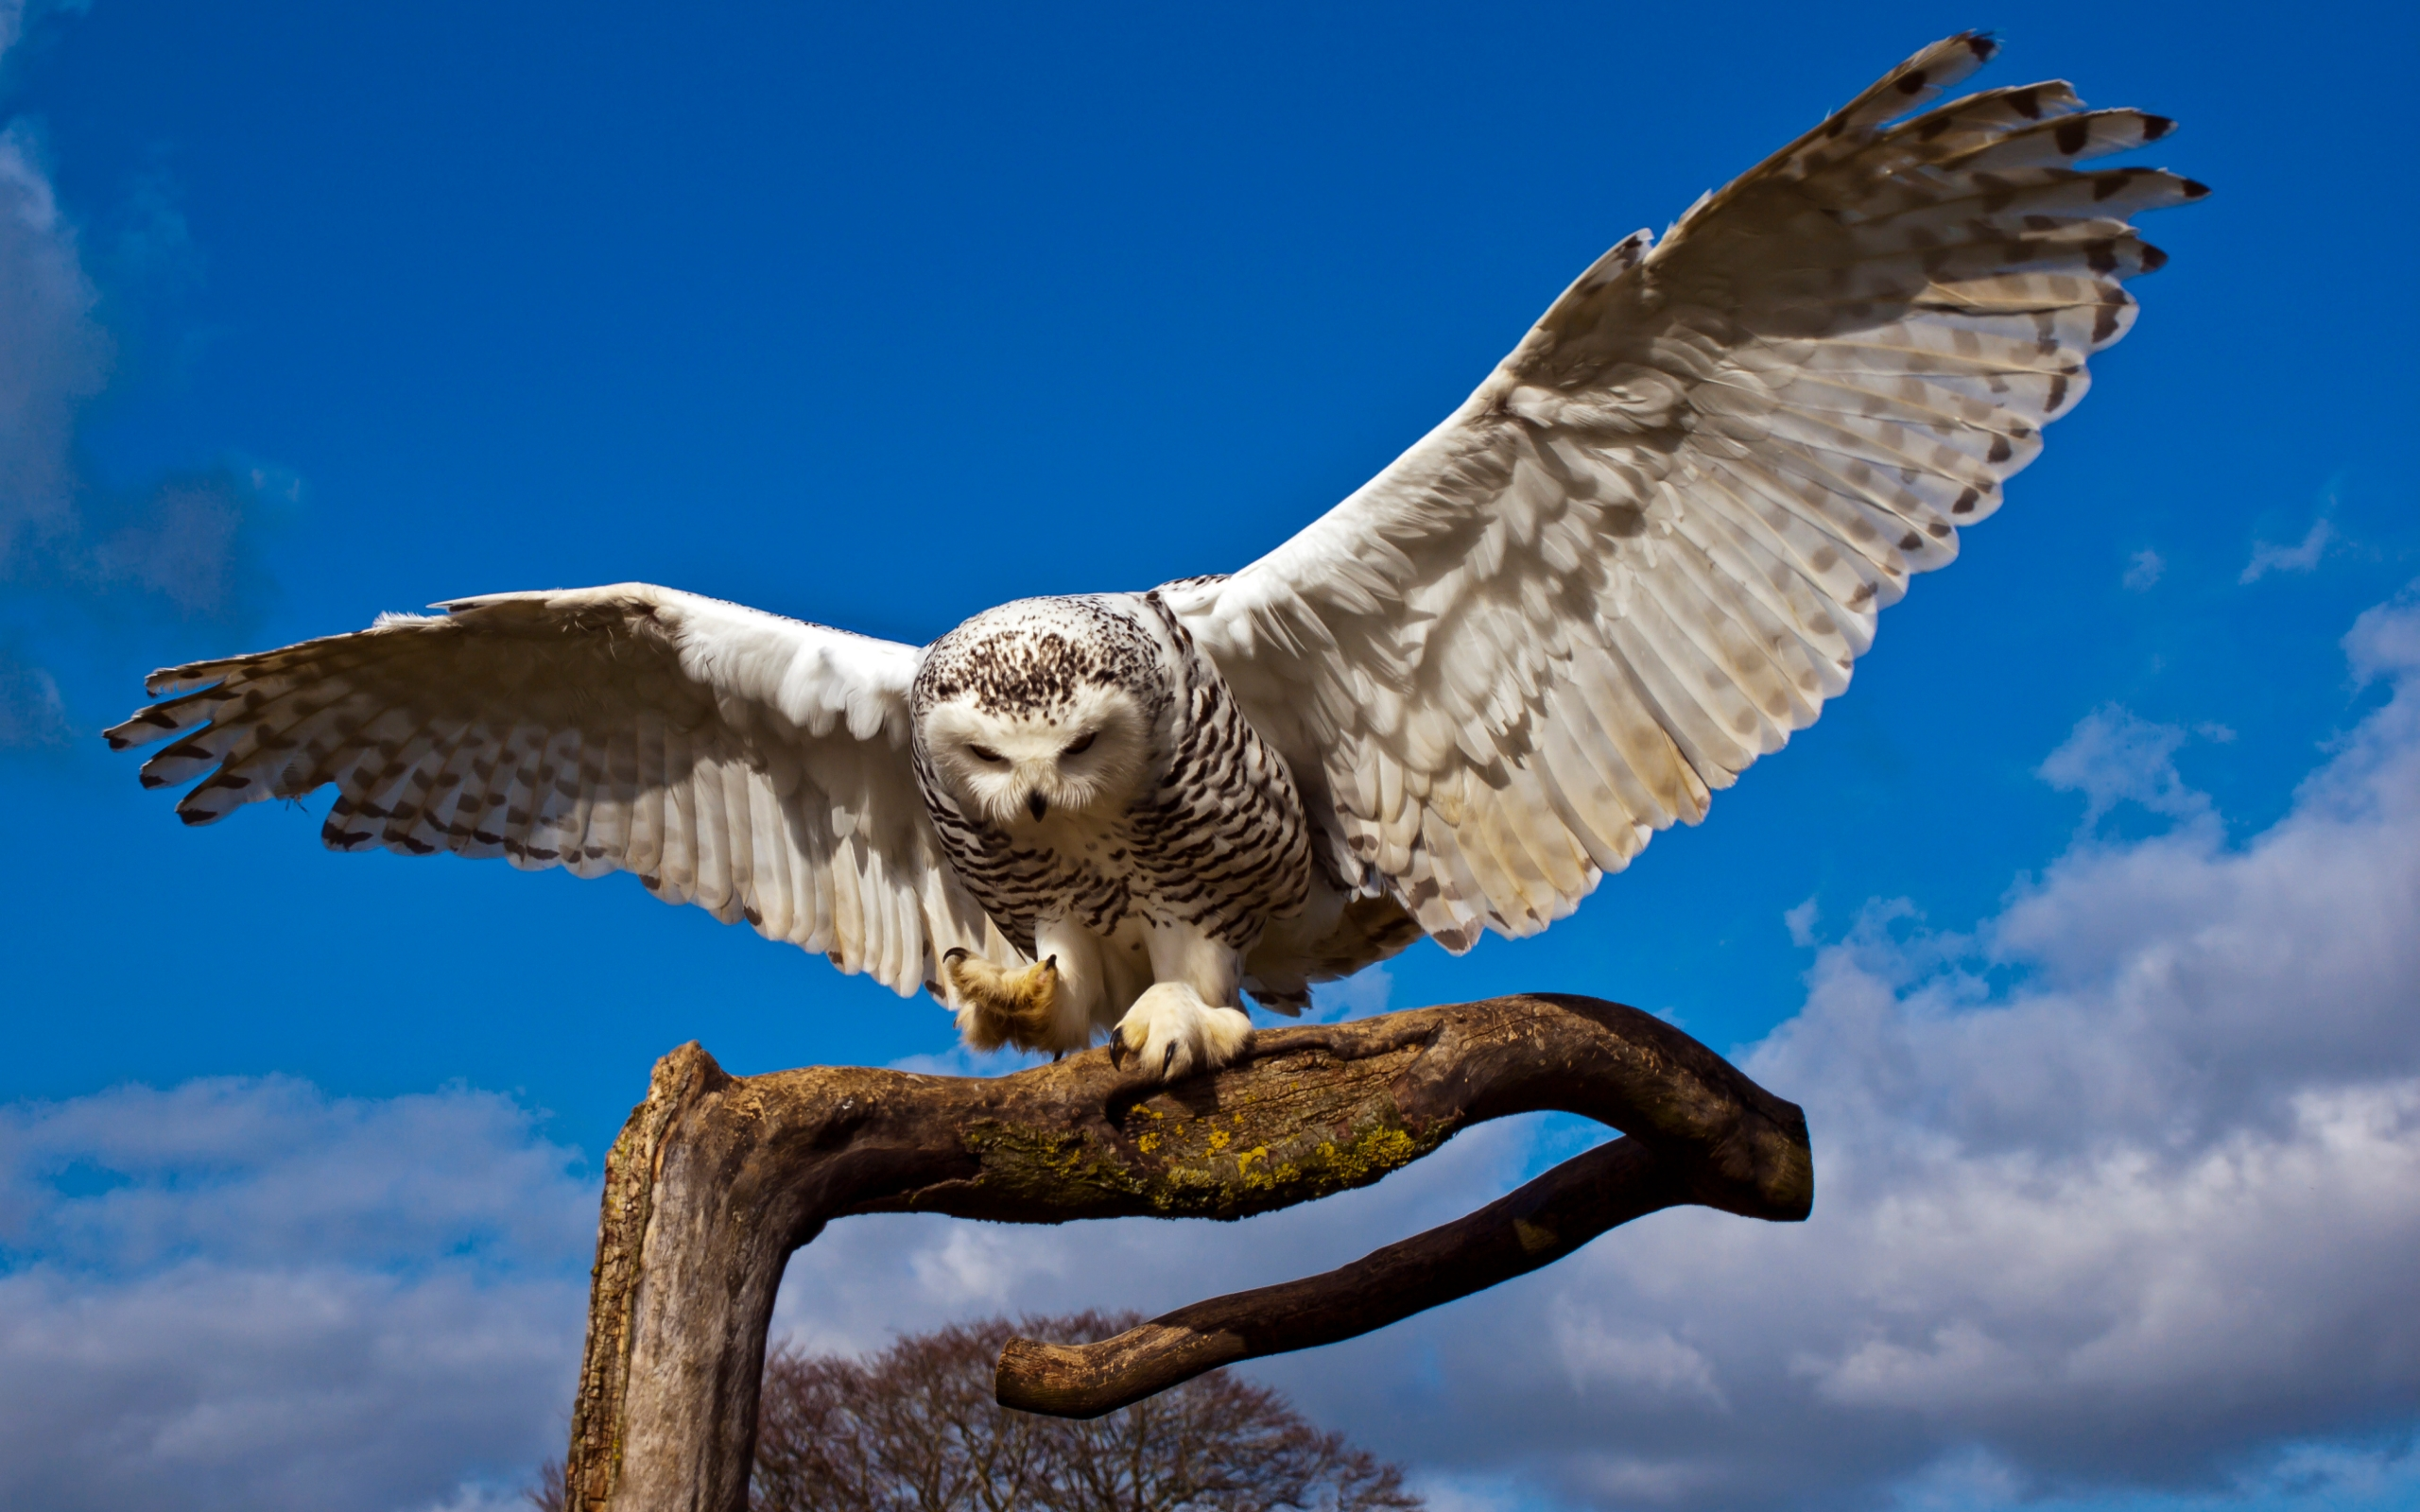 Fall Wallpaper For Computer Screen Snowy Owl Beautiful Hd Beautiful Pictures All Hd Wallpapers